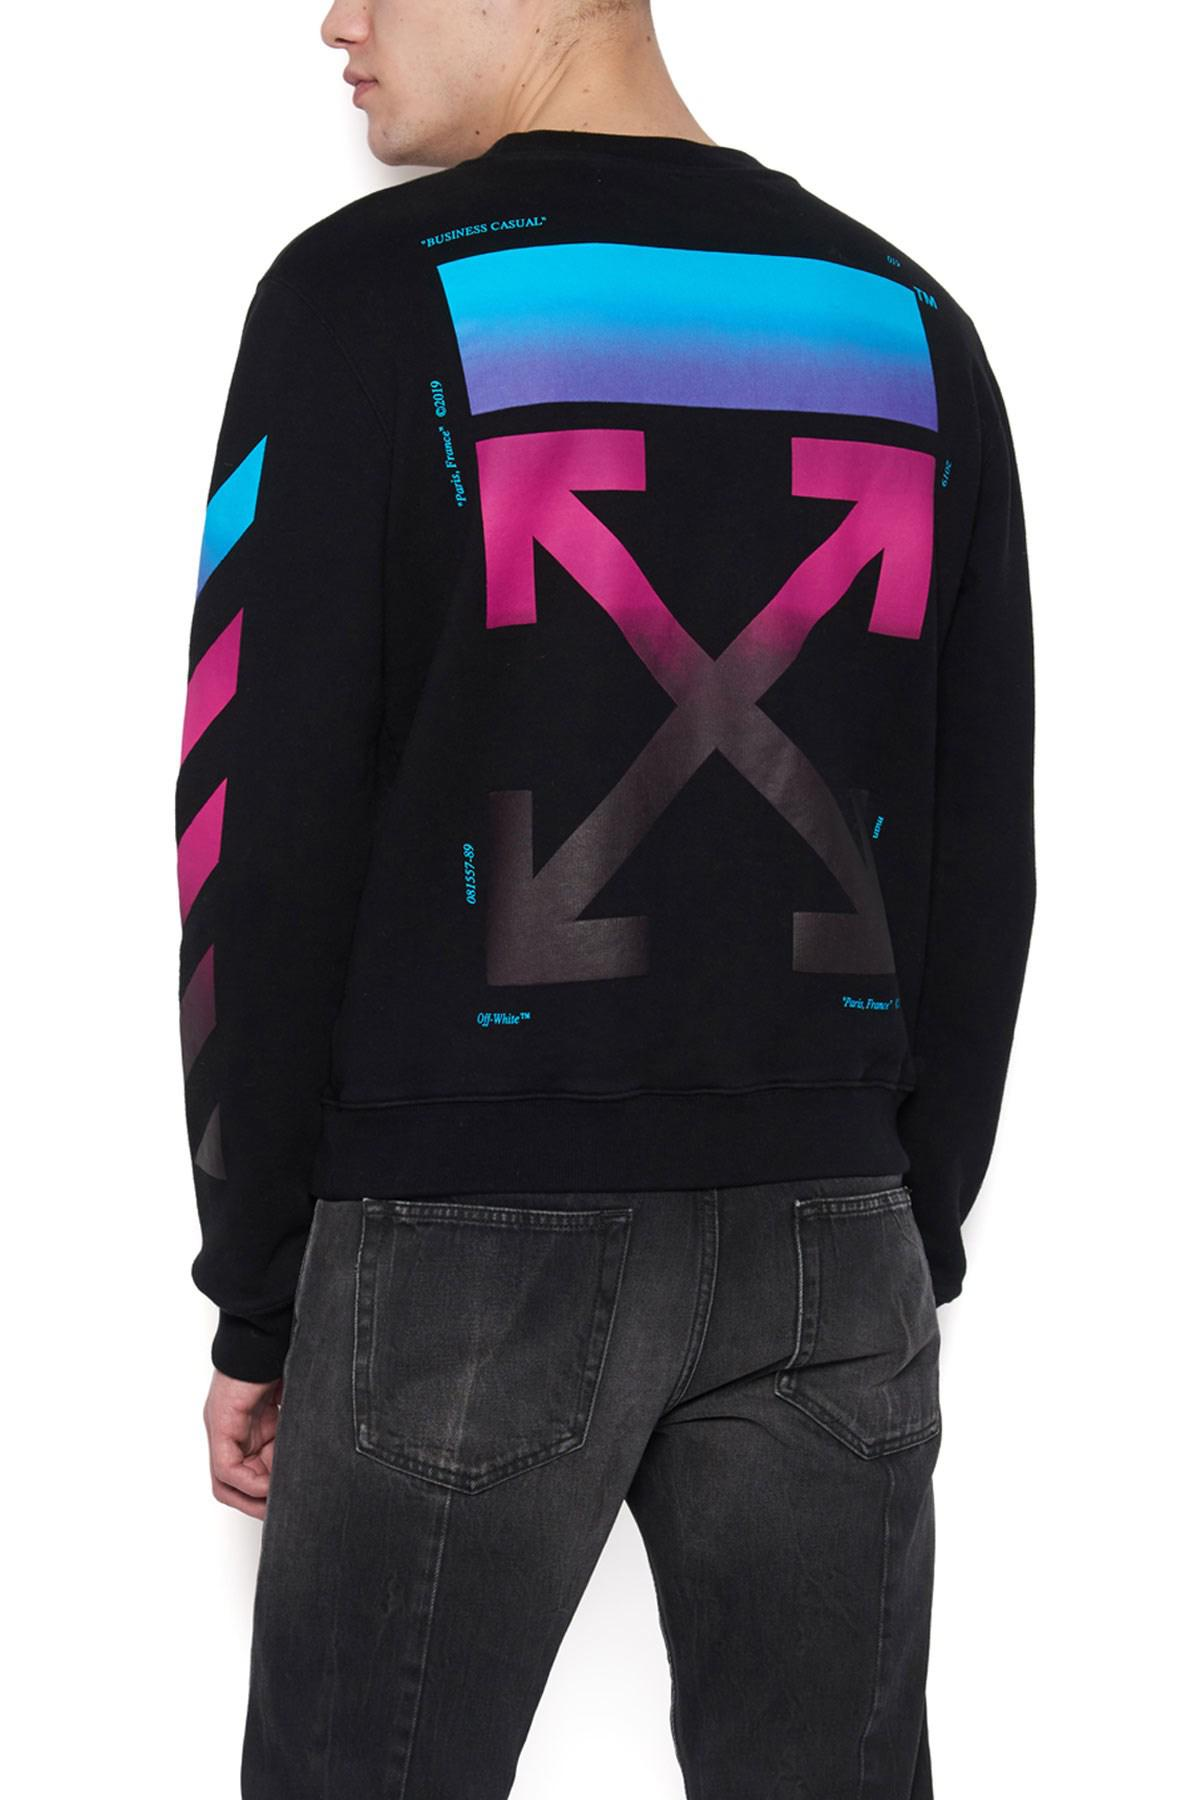 645635dc5fb Off-White c o Virgil Abloh  diag Gradient  Sweatshirt in Black for ...